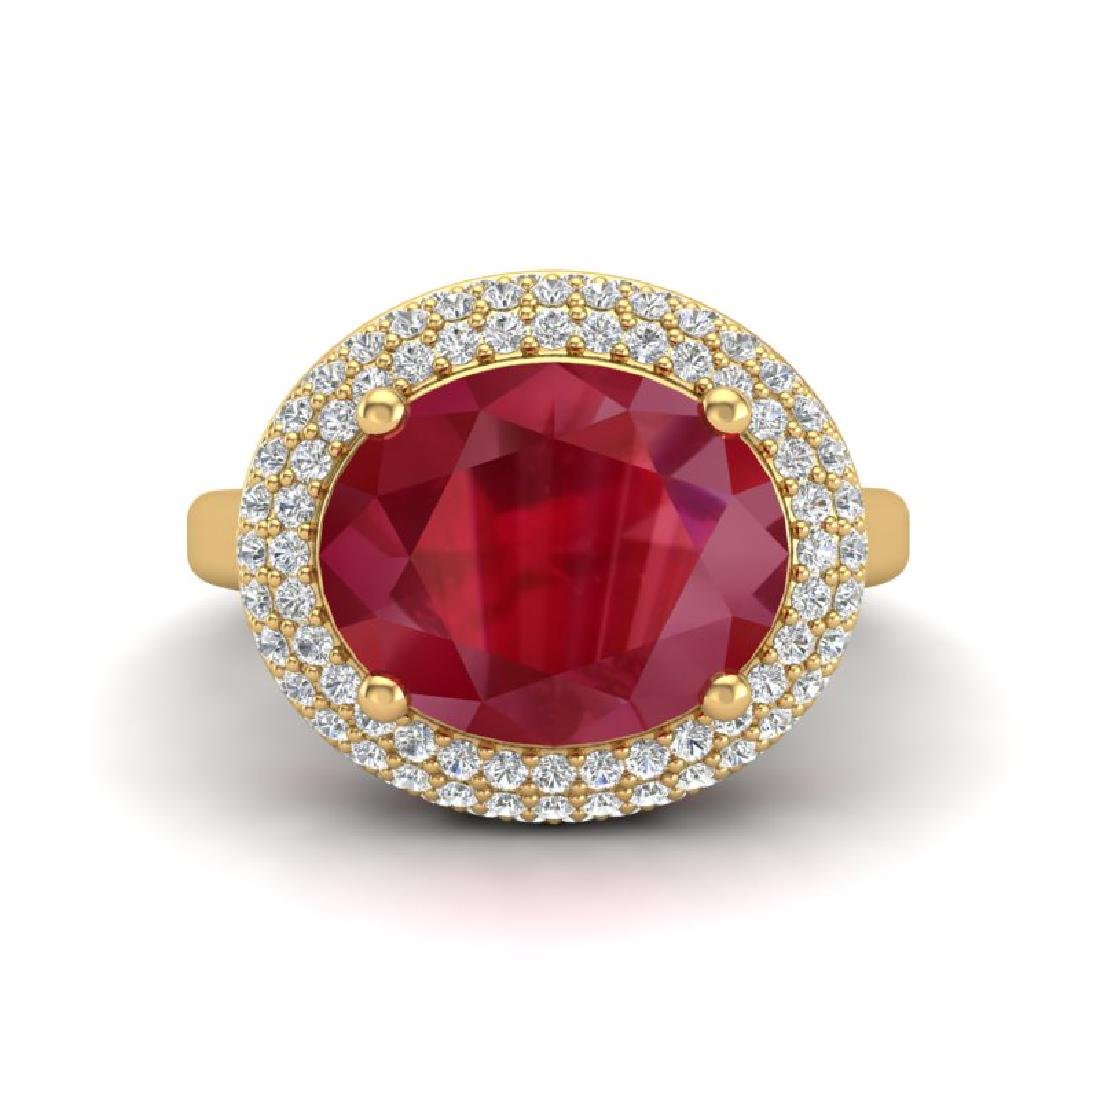 4.50 CTW Ruby & Micro Pave VS/SI Diamond Ring 18K - 2